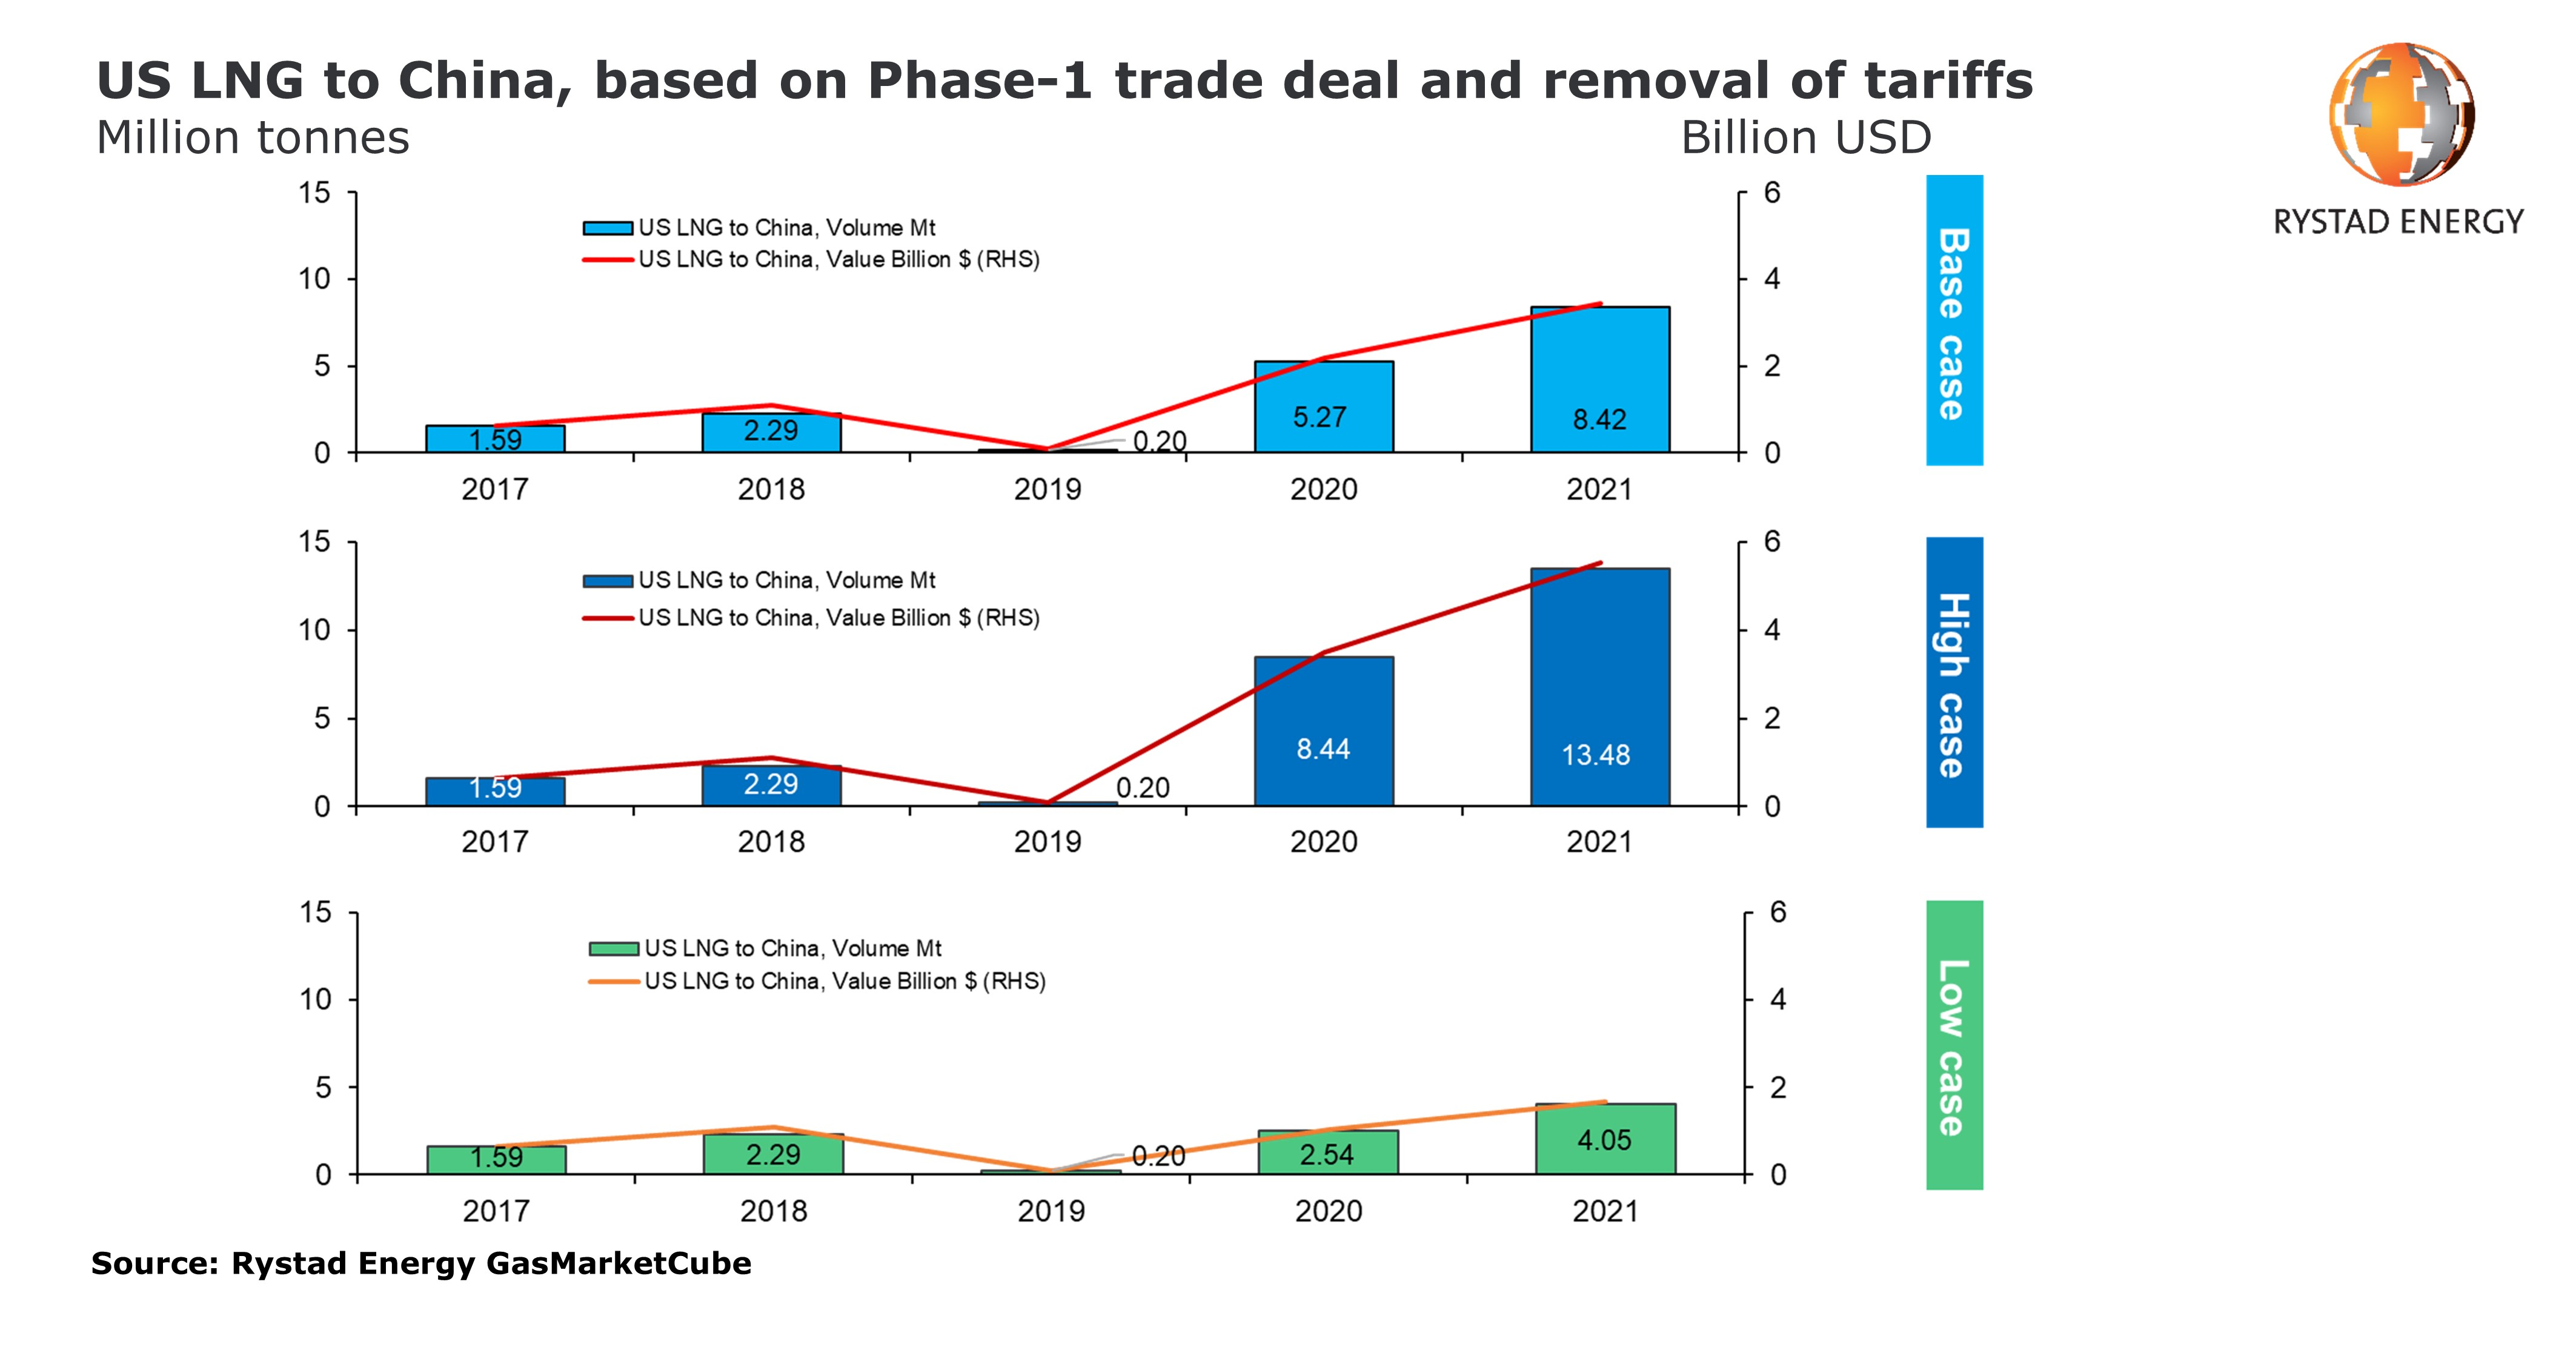 Chart showing US LNG to China, based on Phase-1 trade deal and removal of tariffs in million tonnes